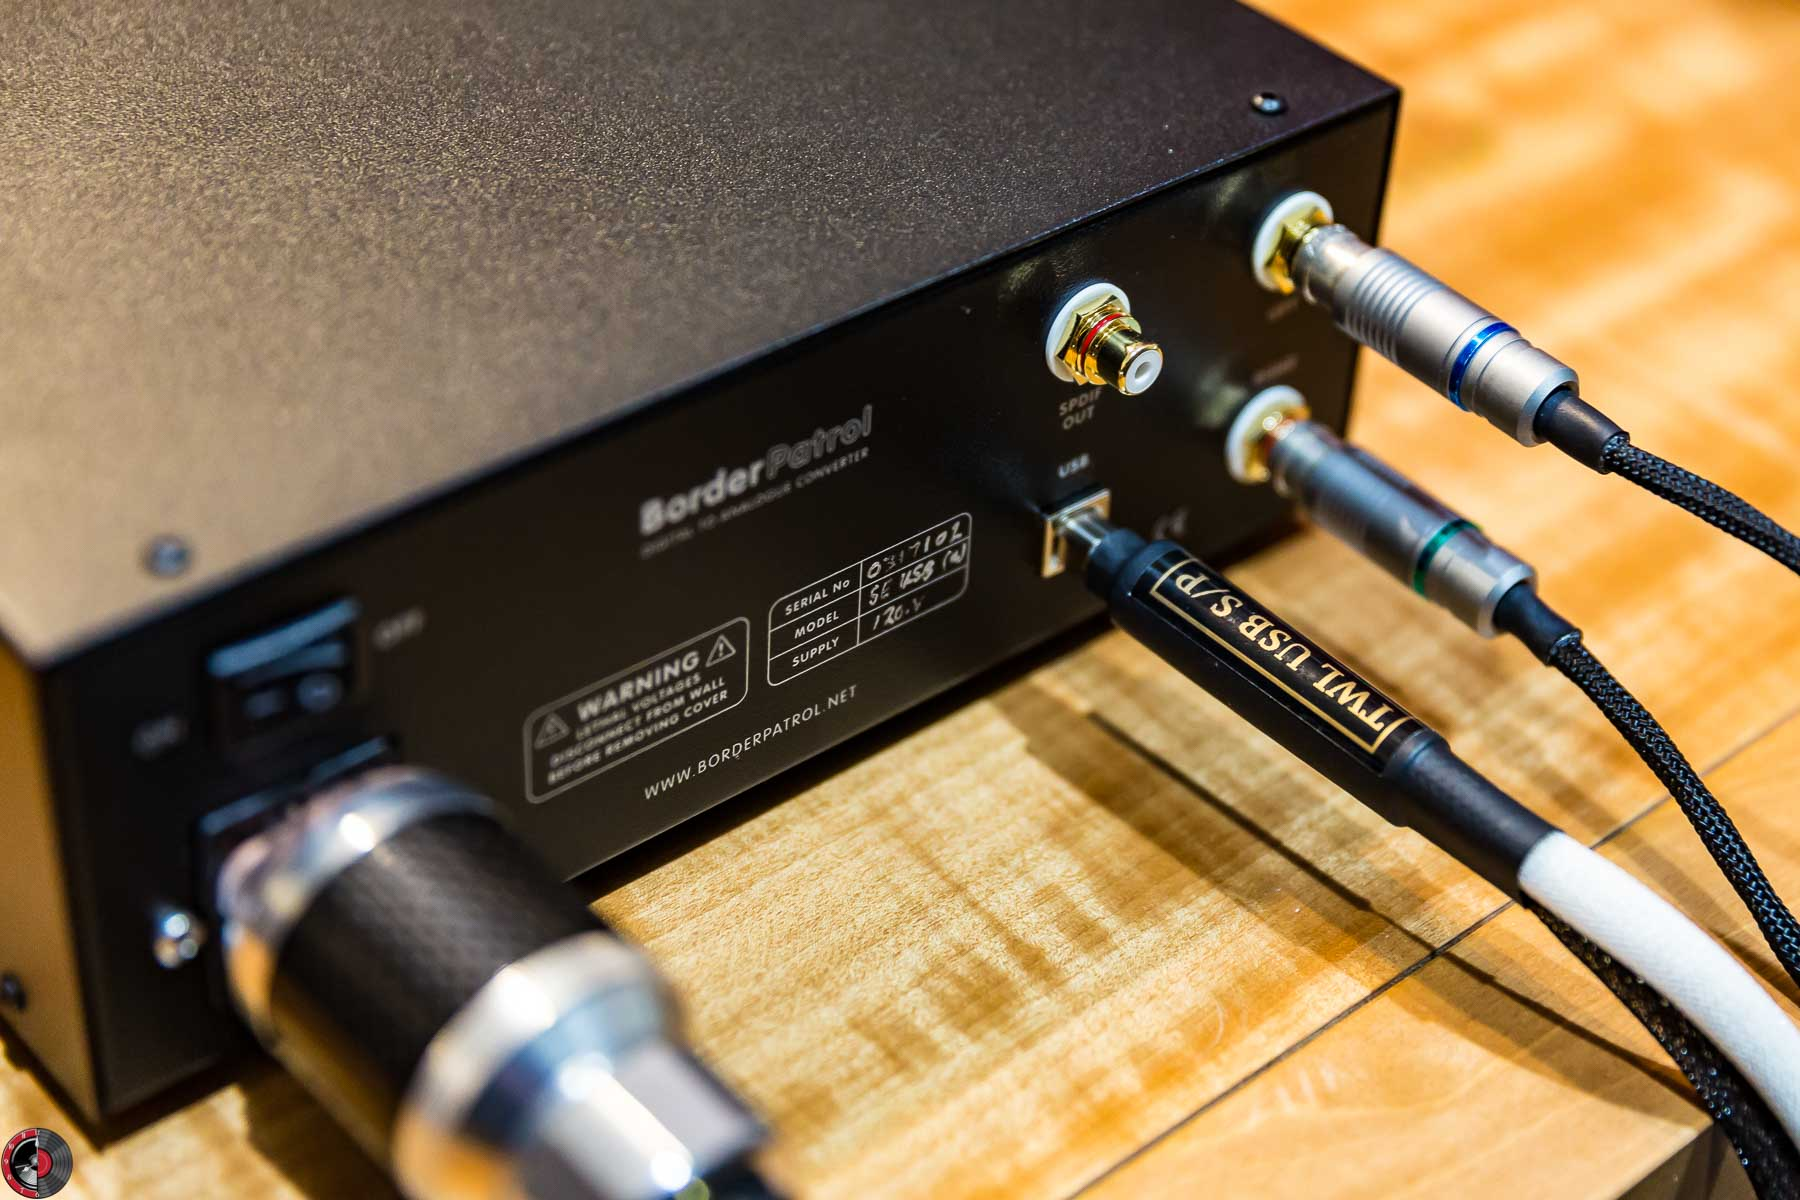 Audio Fur and the Border Patrol DAC | Part-Time Audiophile